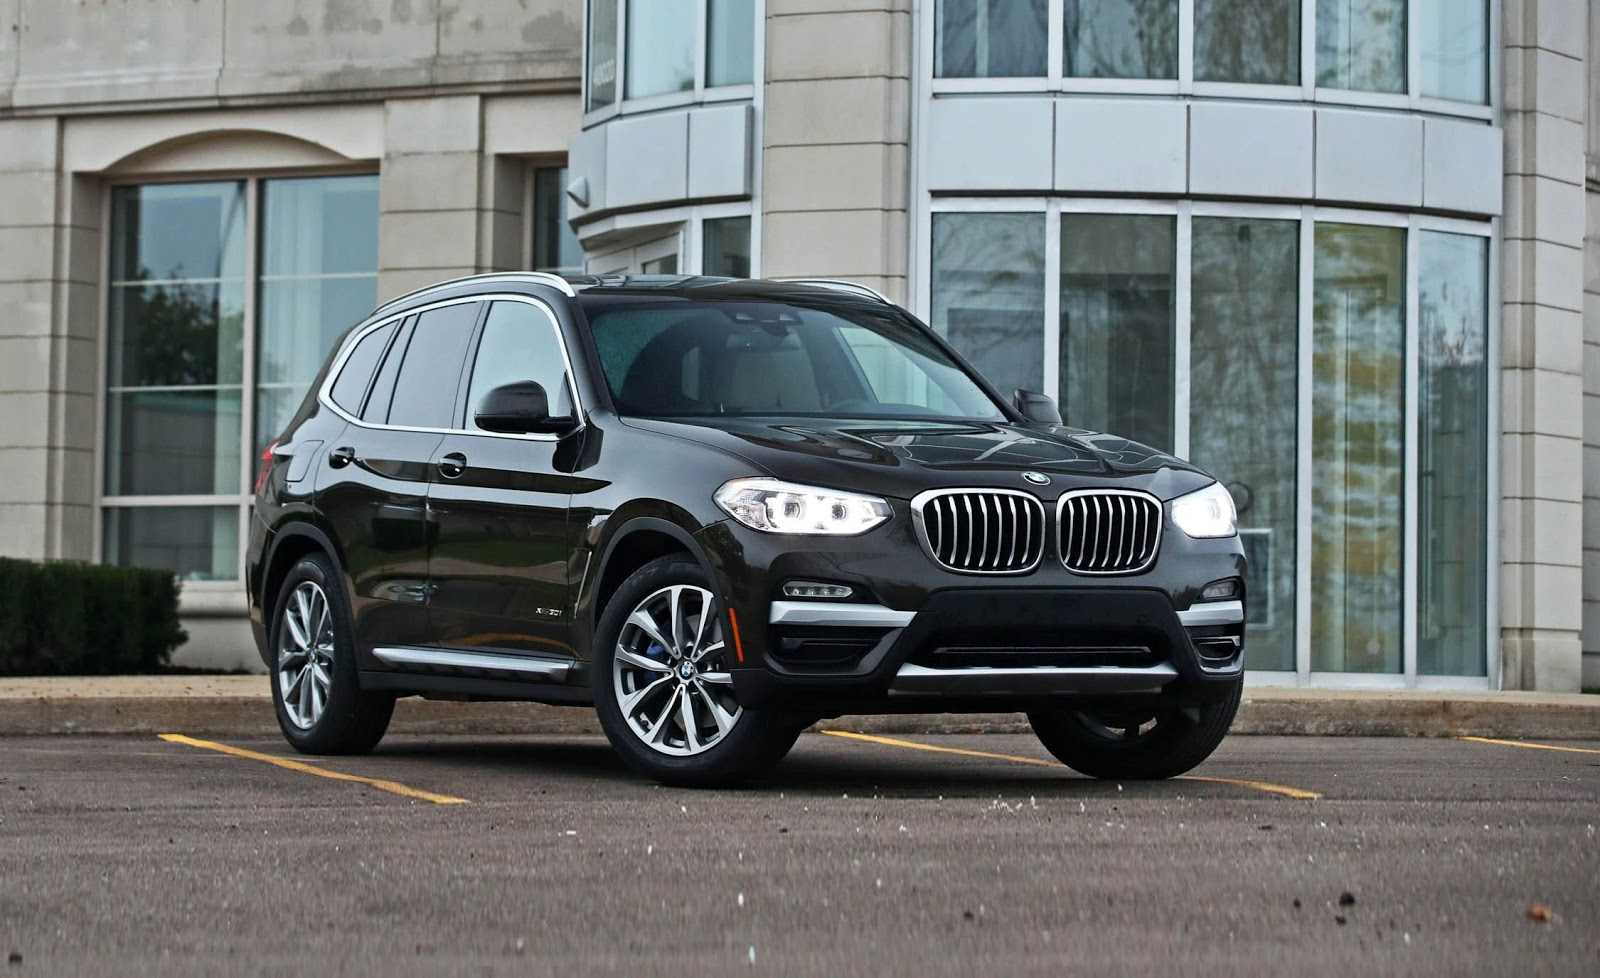 Photo of used luxury SUV